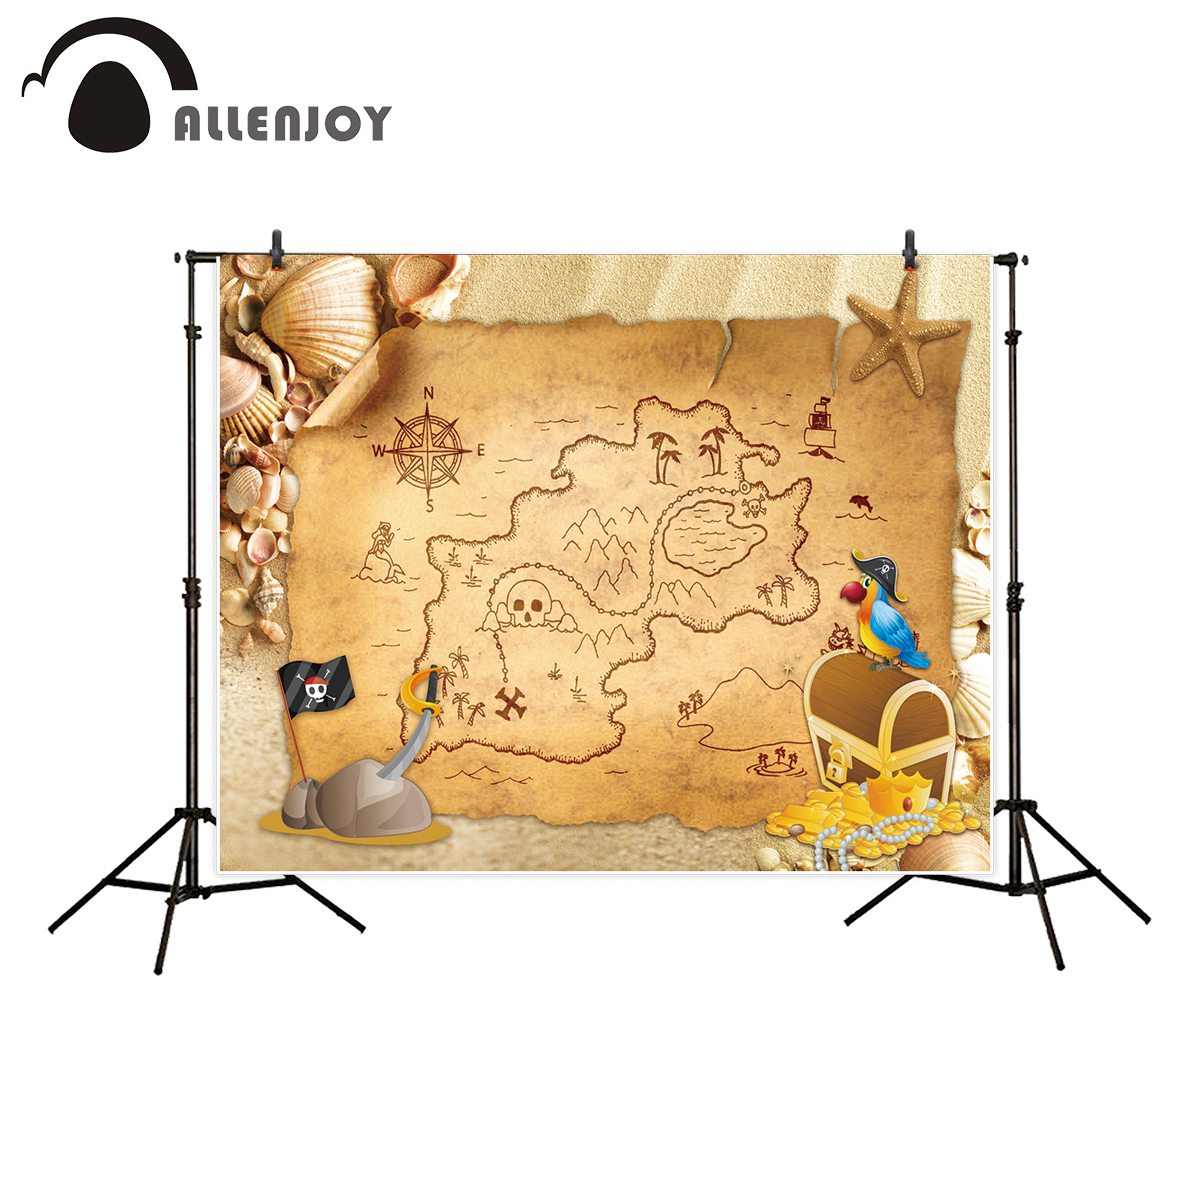 Allenjoy background for photographer pirates treasure map beach parrot shell backdrop photo studio photo prop professional allenjoy photo backdrop retro vintage flowers noble mystery professional vinyl background pictures background for photo studio